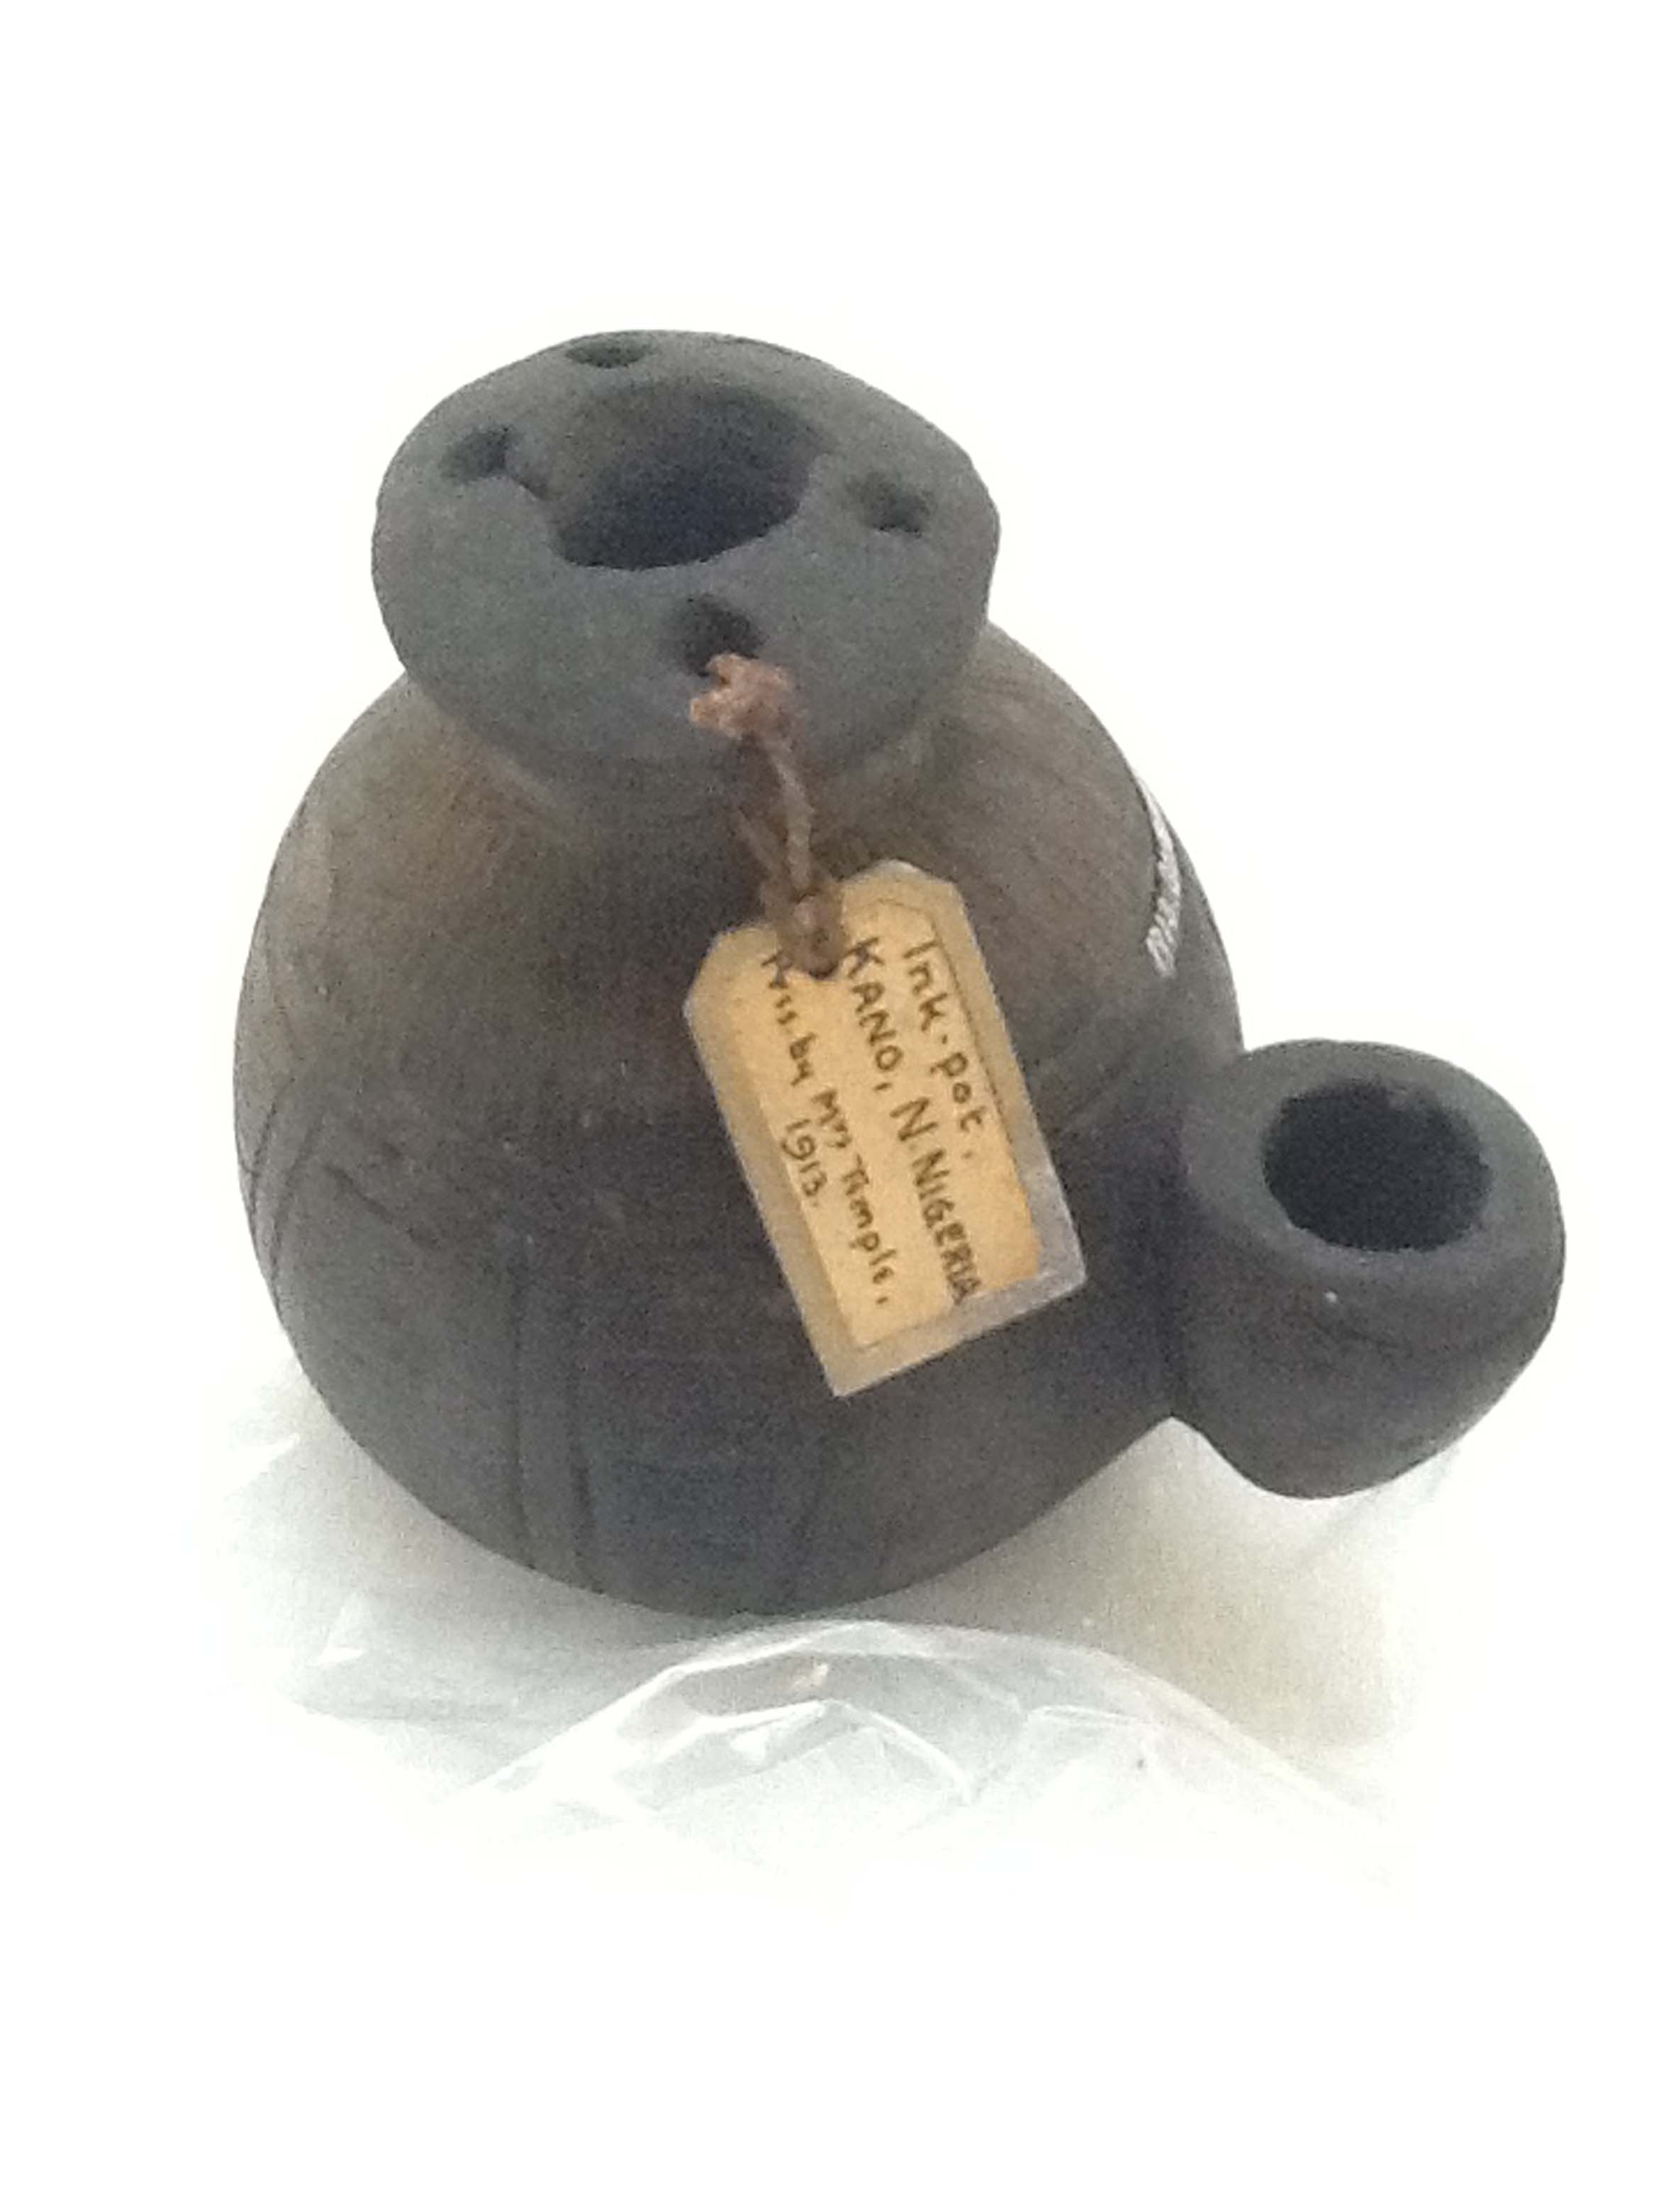 An ink pot from Nigeria on display in West Africa: Word, Symbol, Song. Courtesy of from Pitt Rivers Museum, University of Oxford.